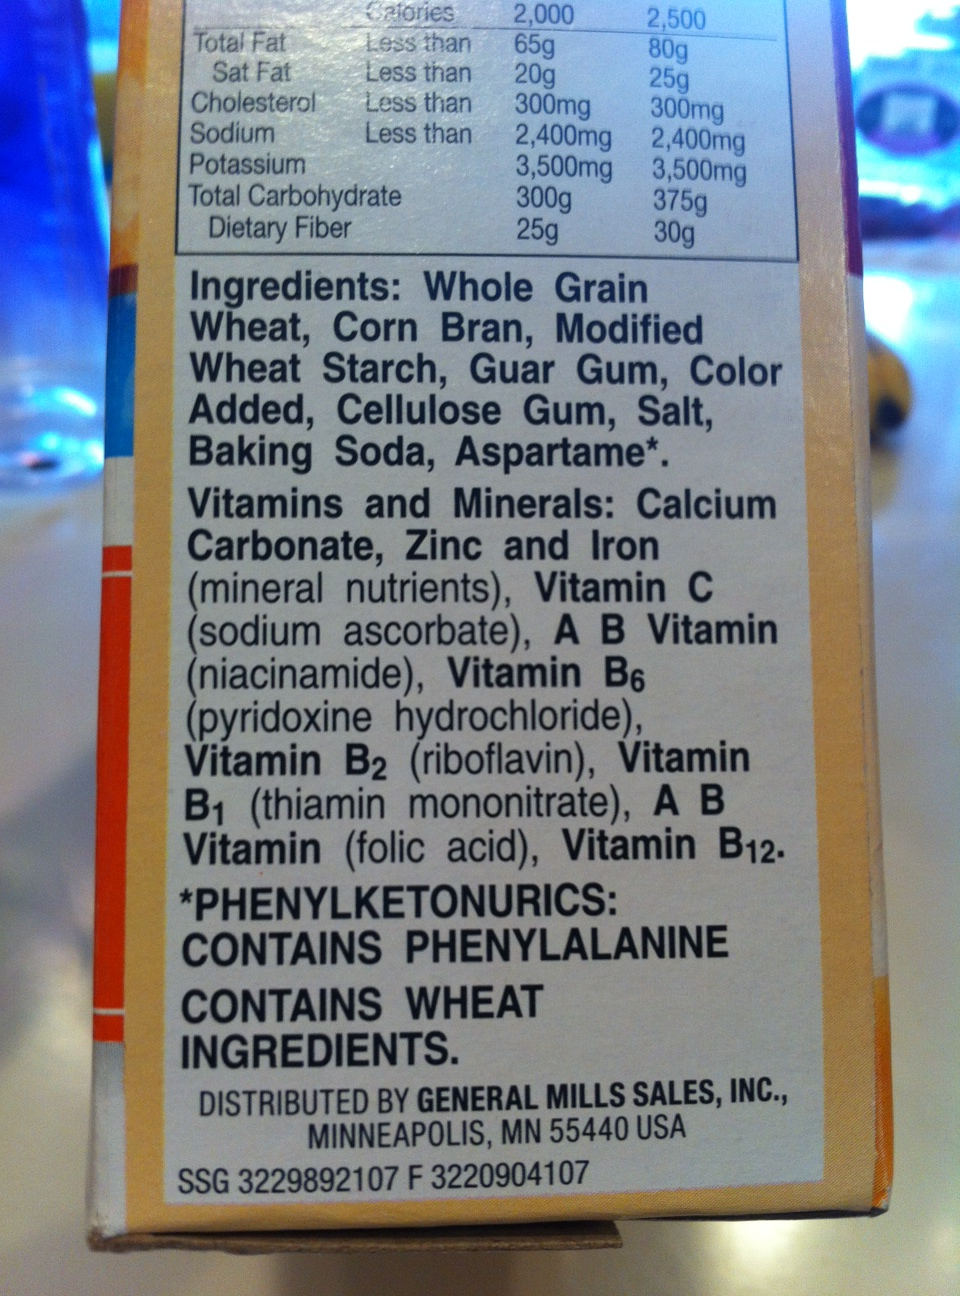 Fiber One Cereal Box - Ingredients List